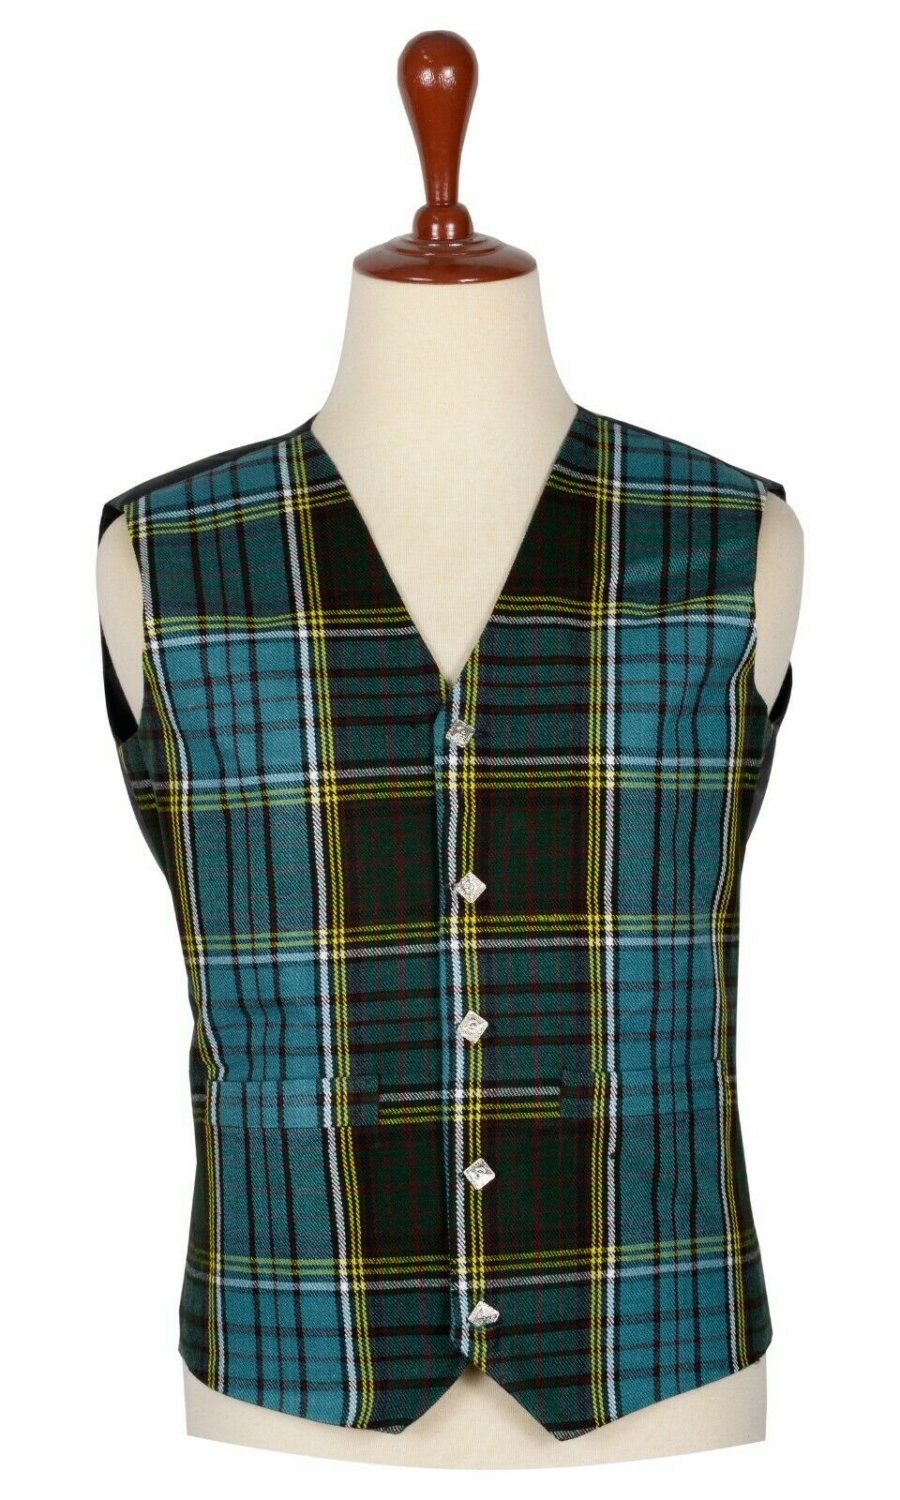 56 Inches Chest New Handmade Traditional Scottish 5 Buttons Tartan Waistcoat Anderson